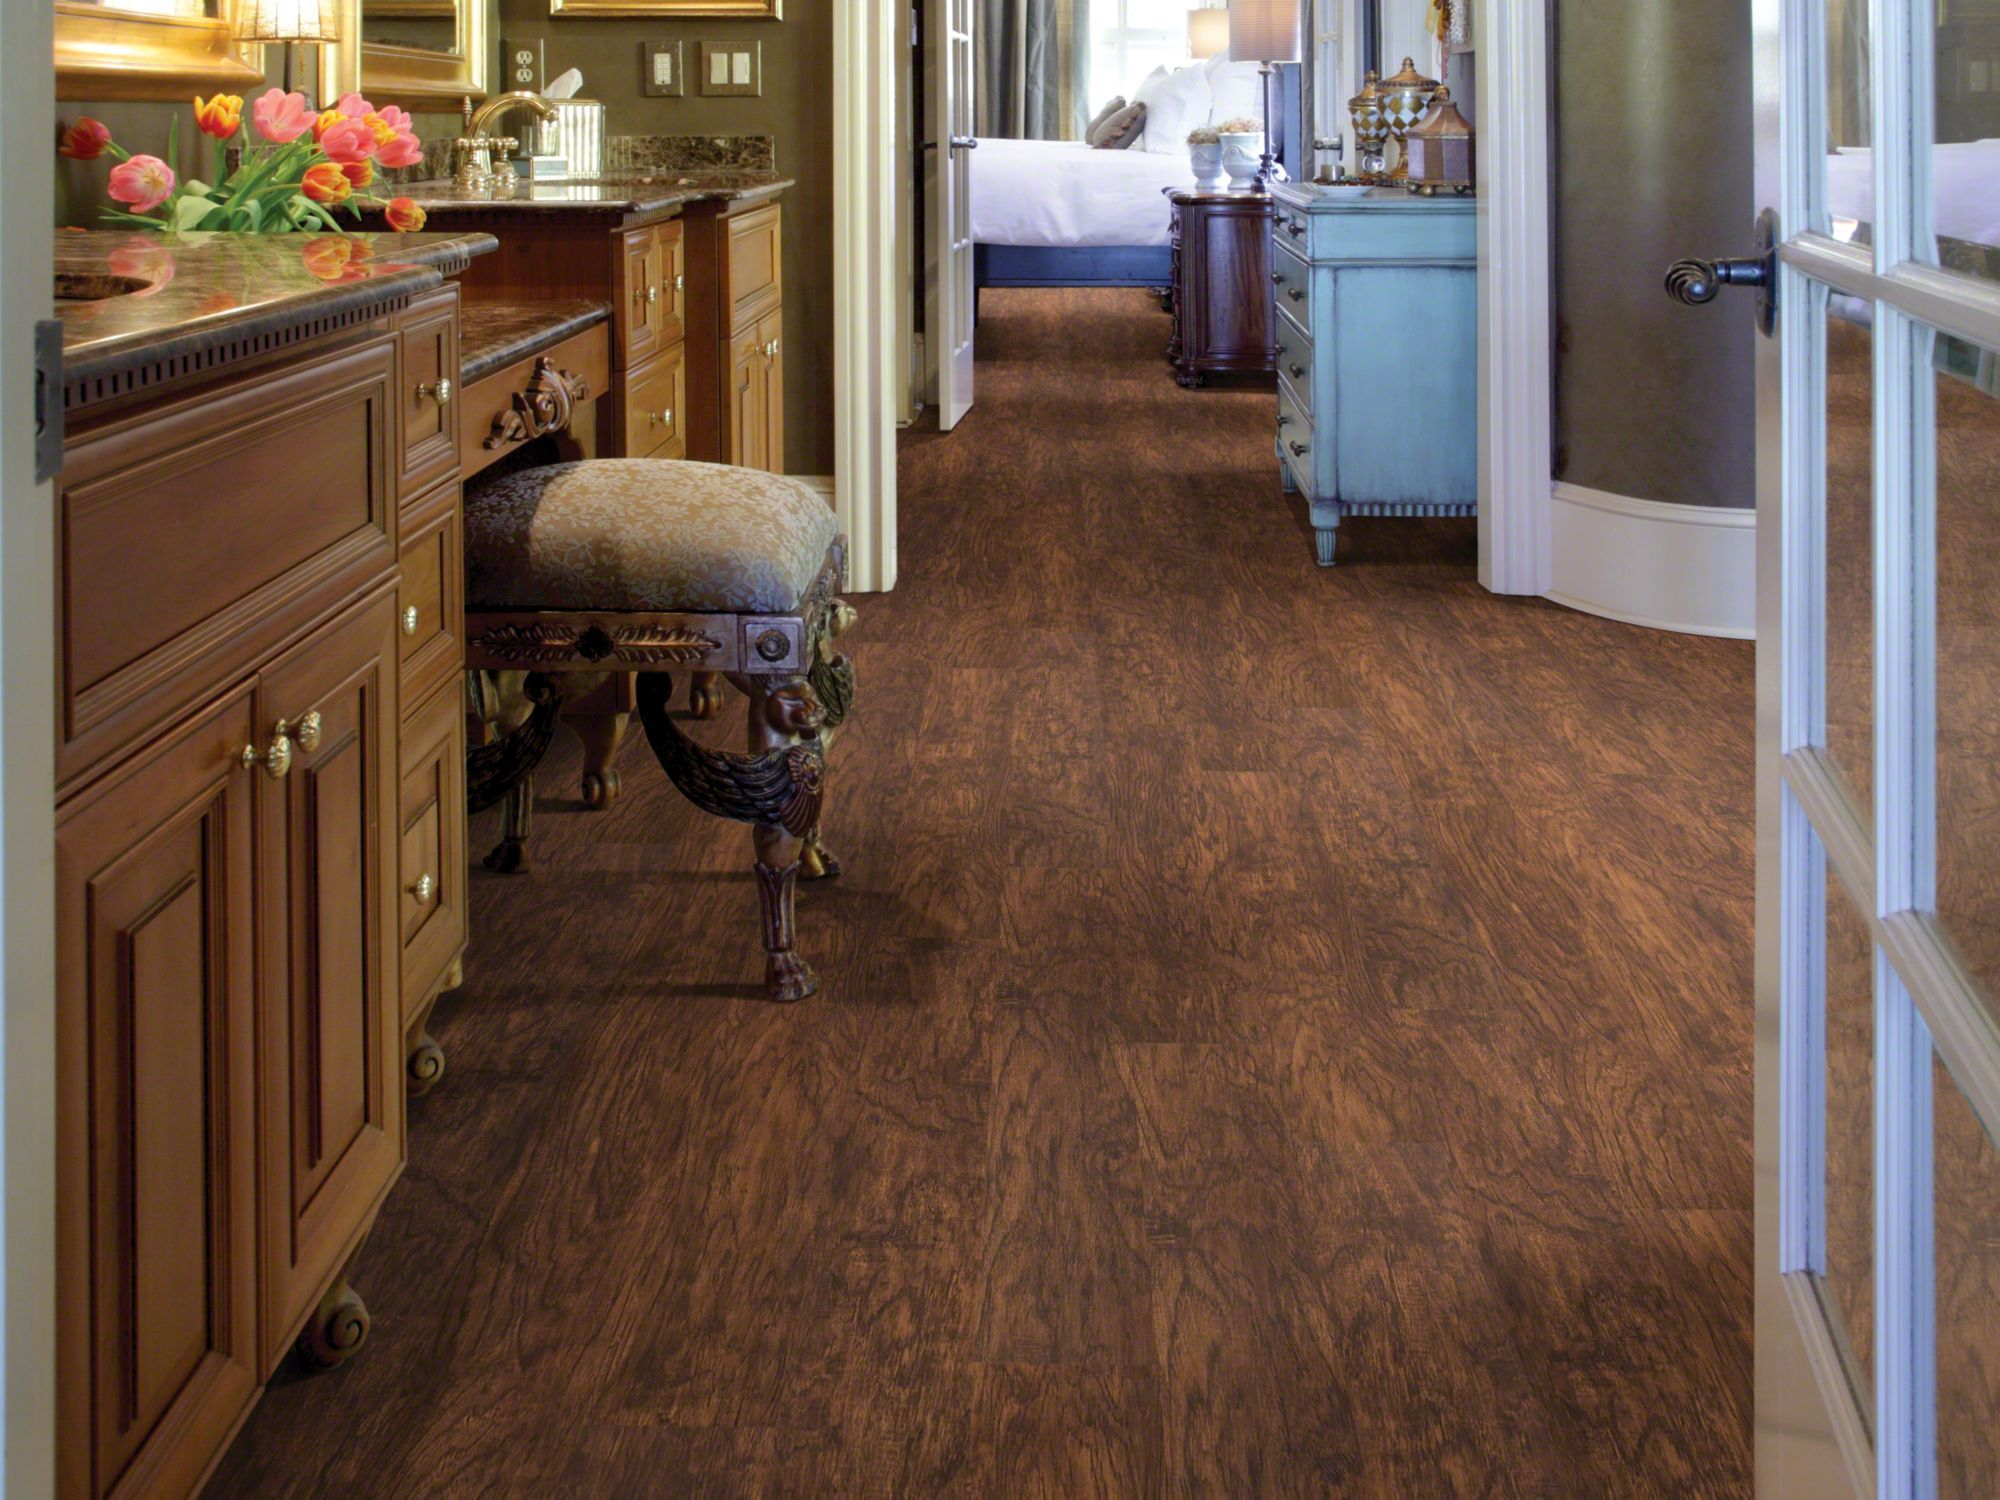 Check out this beautiful flooring keystone carpets offersaviator shaws insight plank propeller brown resilient vinyl flooring is the modern choice for beautiful durable floors wide variety of patterns colors doublecrazyfo Gallery